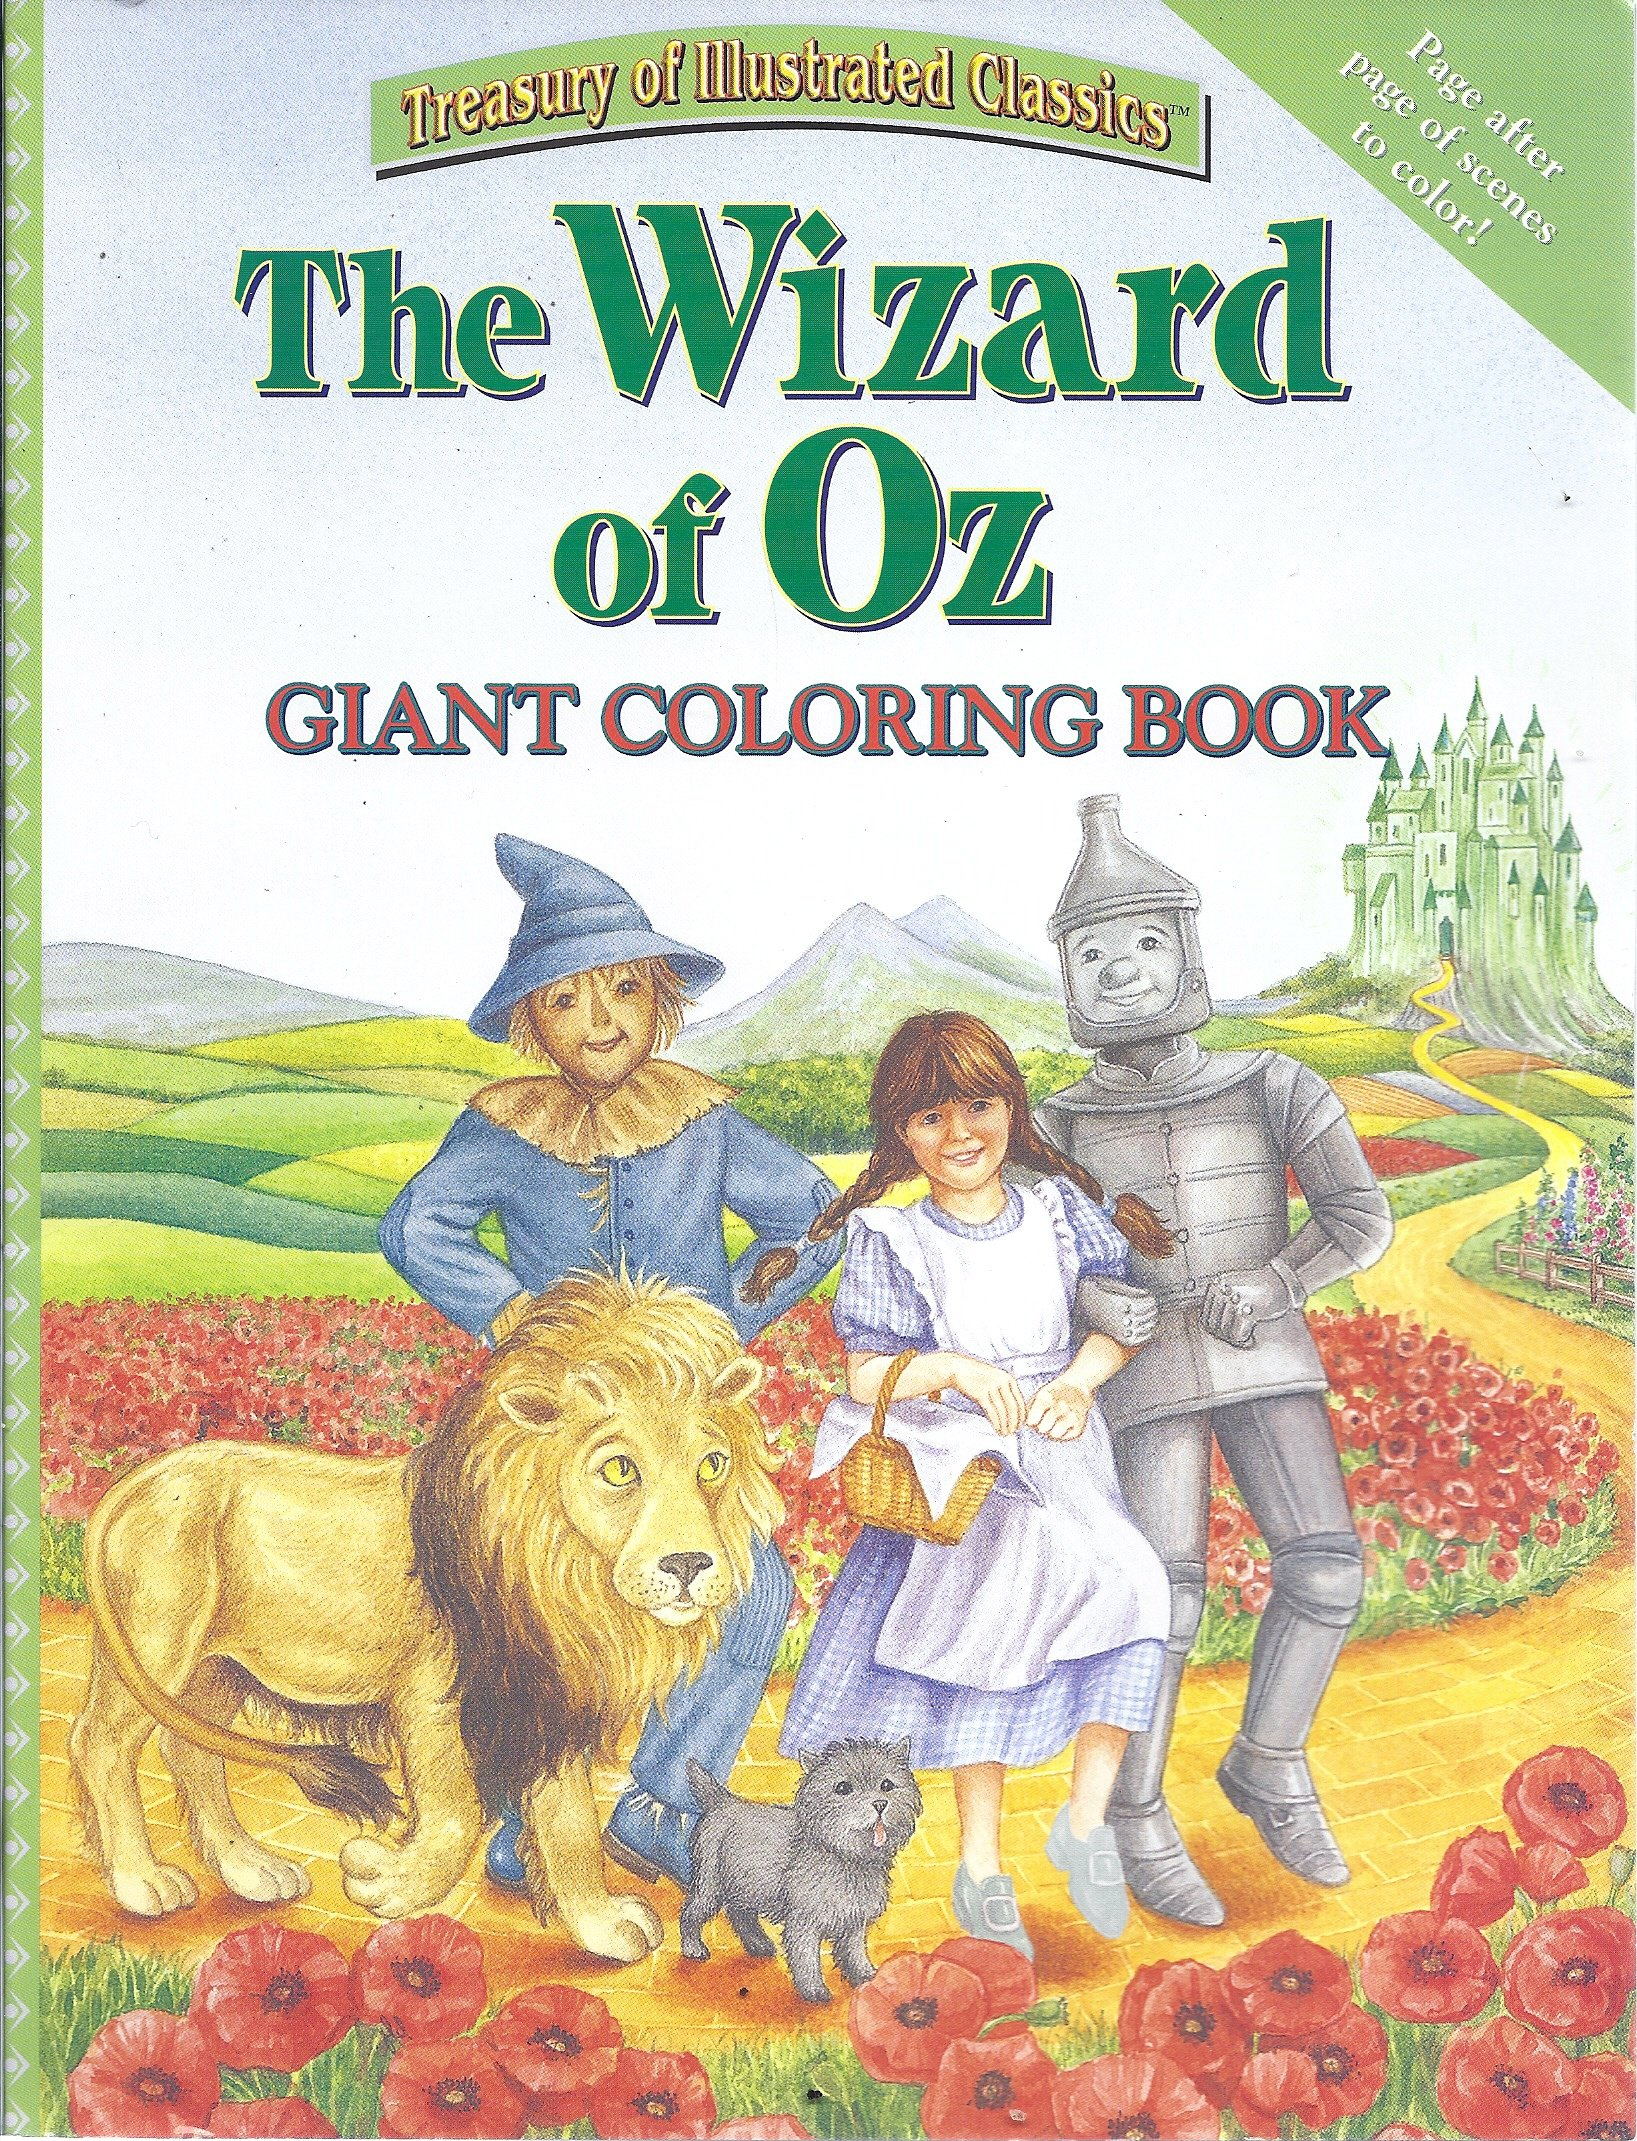 the wizard of oz giant coloring book treasury of illustrated classics na 9780766613300 amazoncom books - Giant Coloring Book